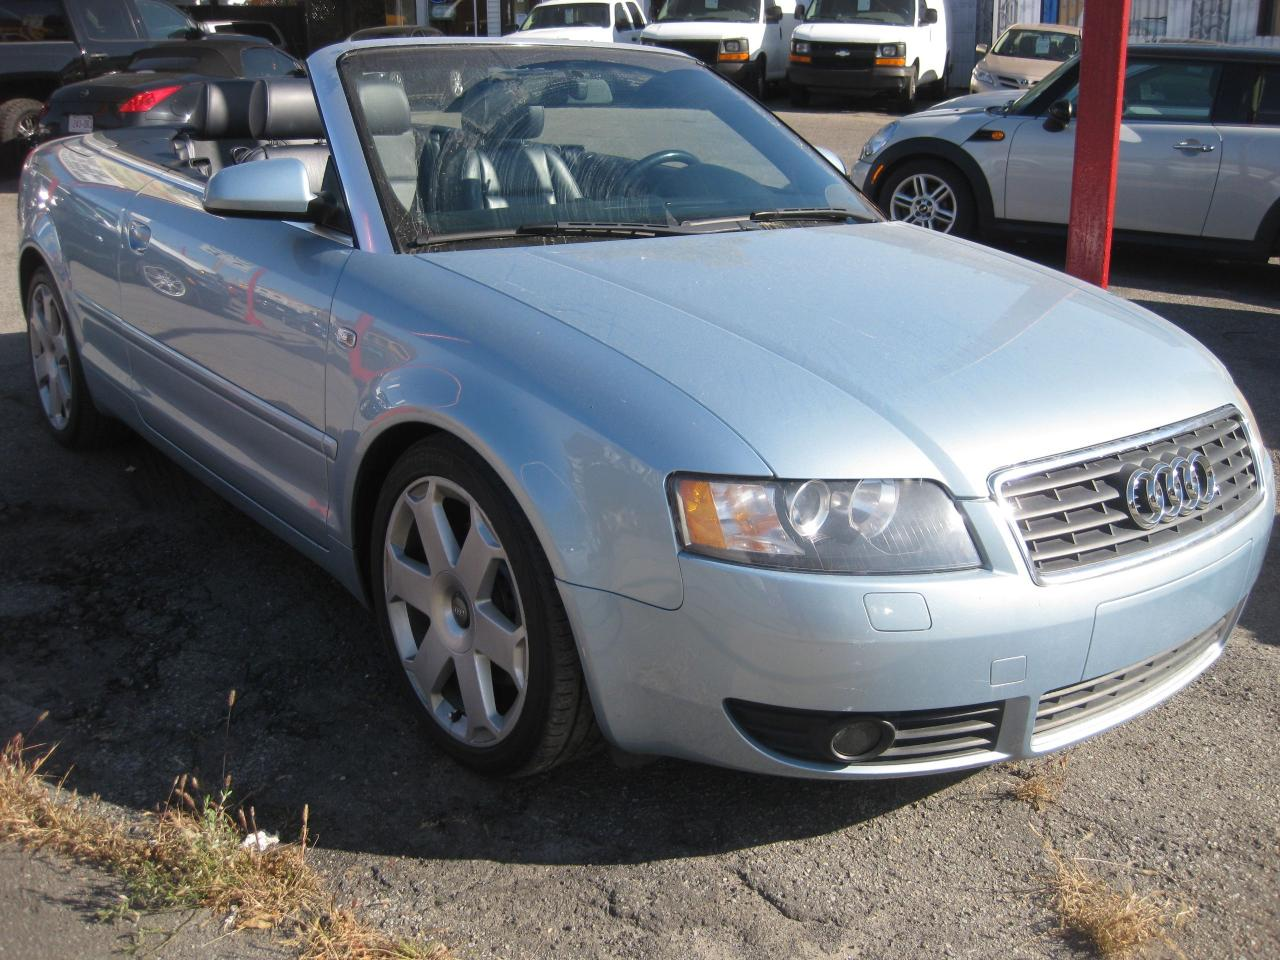 2003 Audi A4 3.0L V6 Convertible Auto 4 pass leather AC